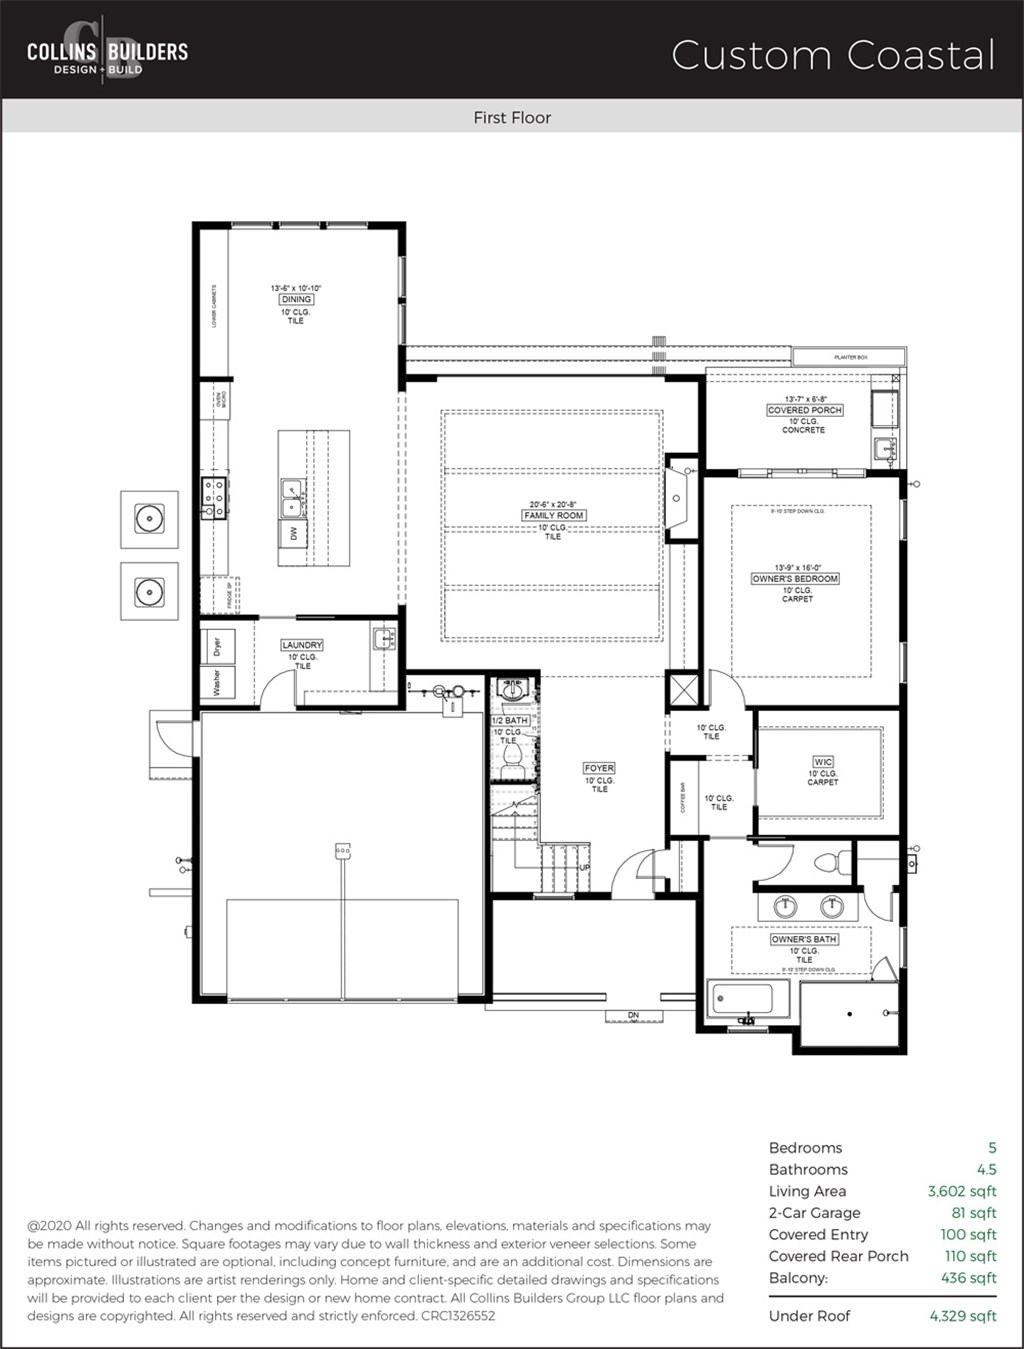 Floor Plan The Cove At Isle Of Palms Custom Coastal First Floor